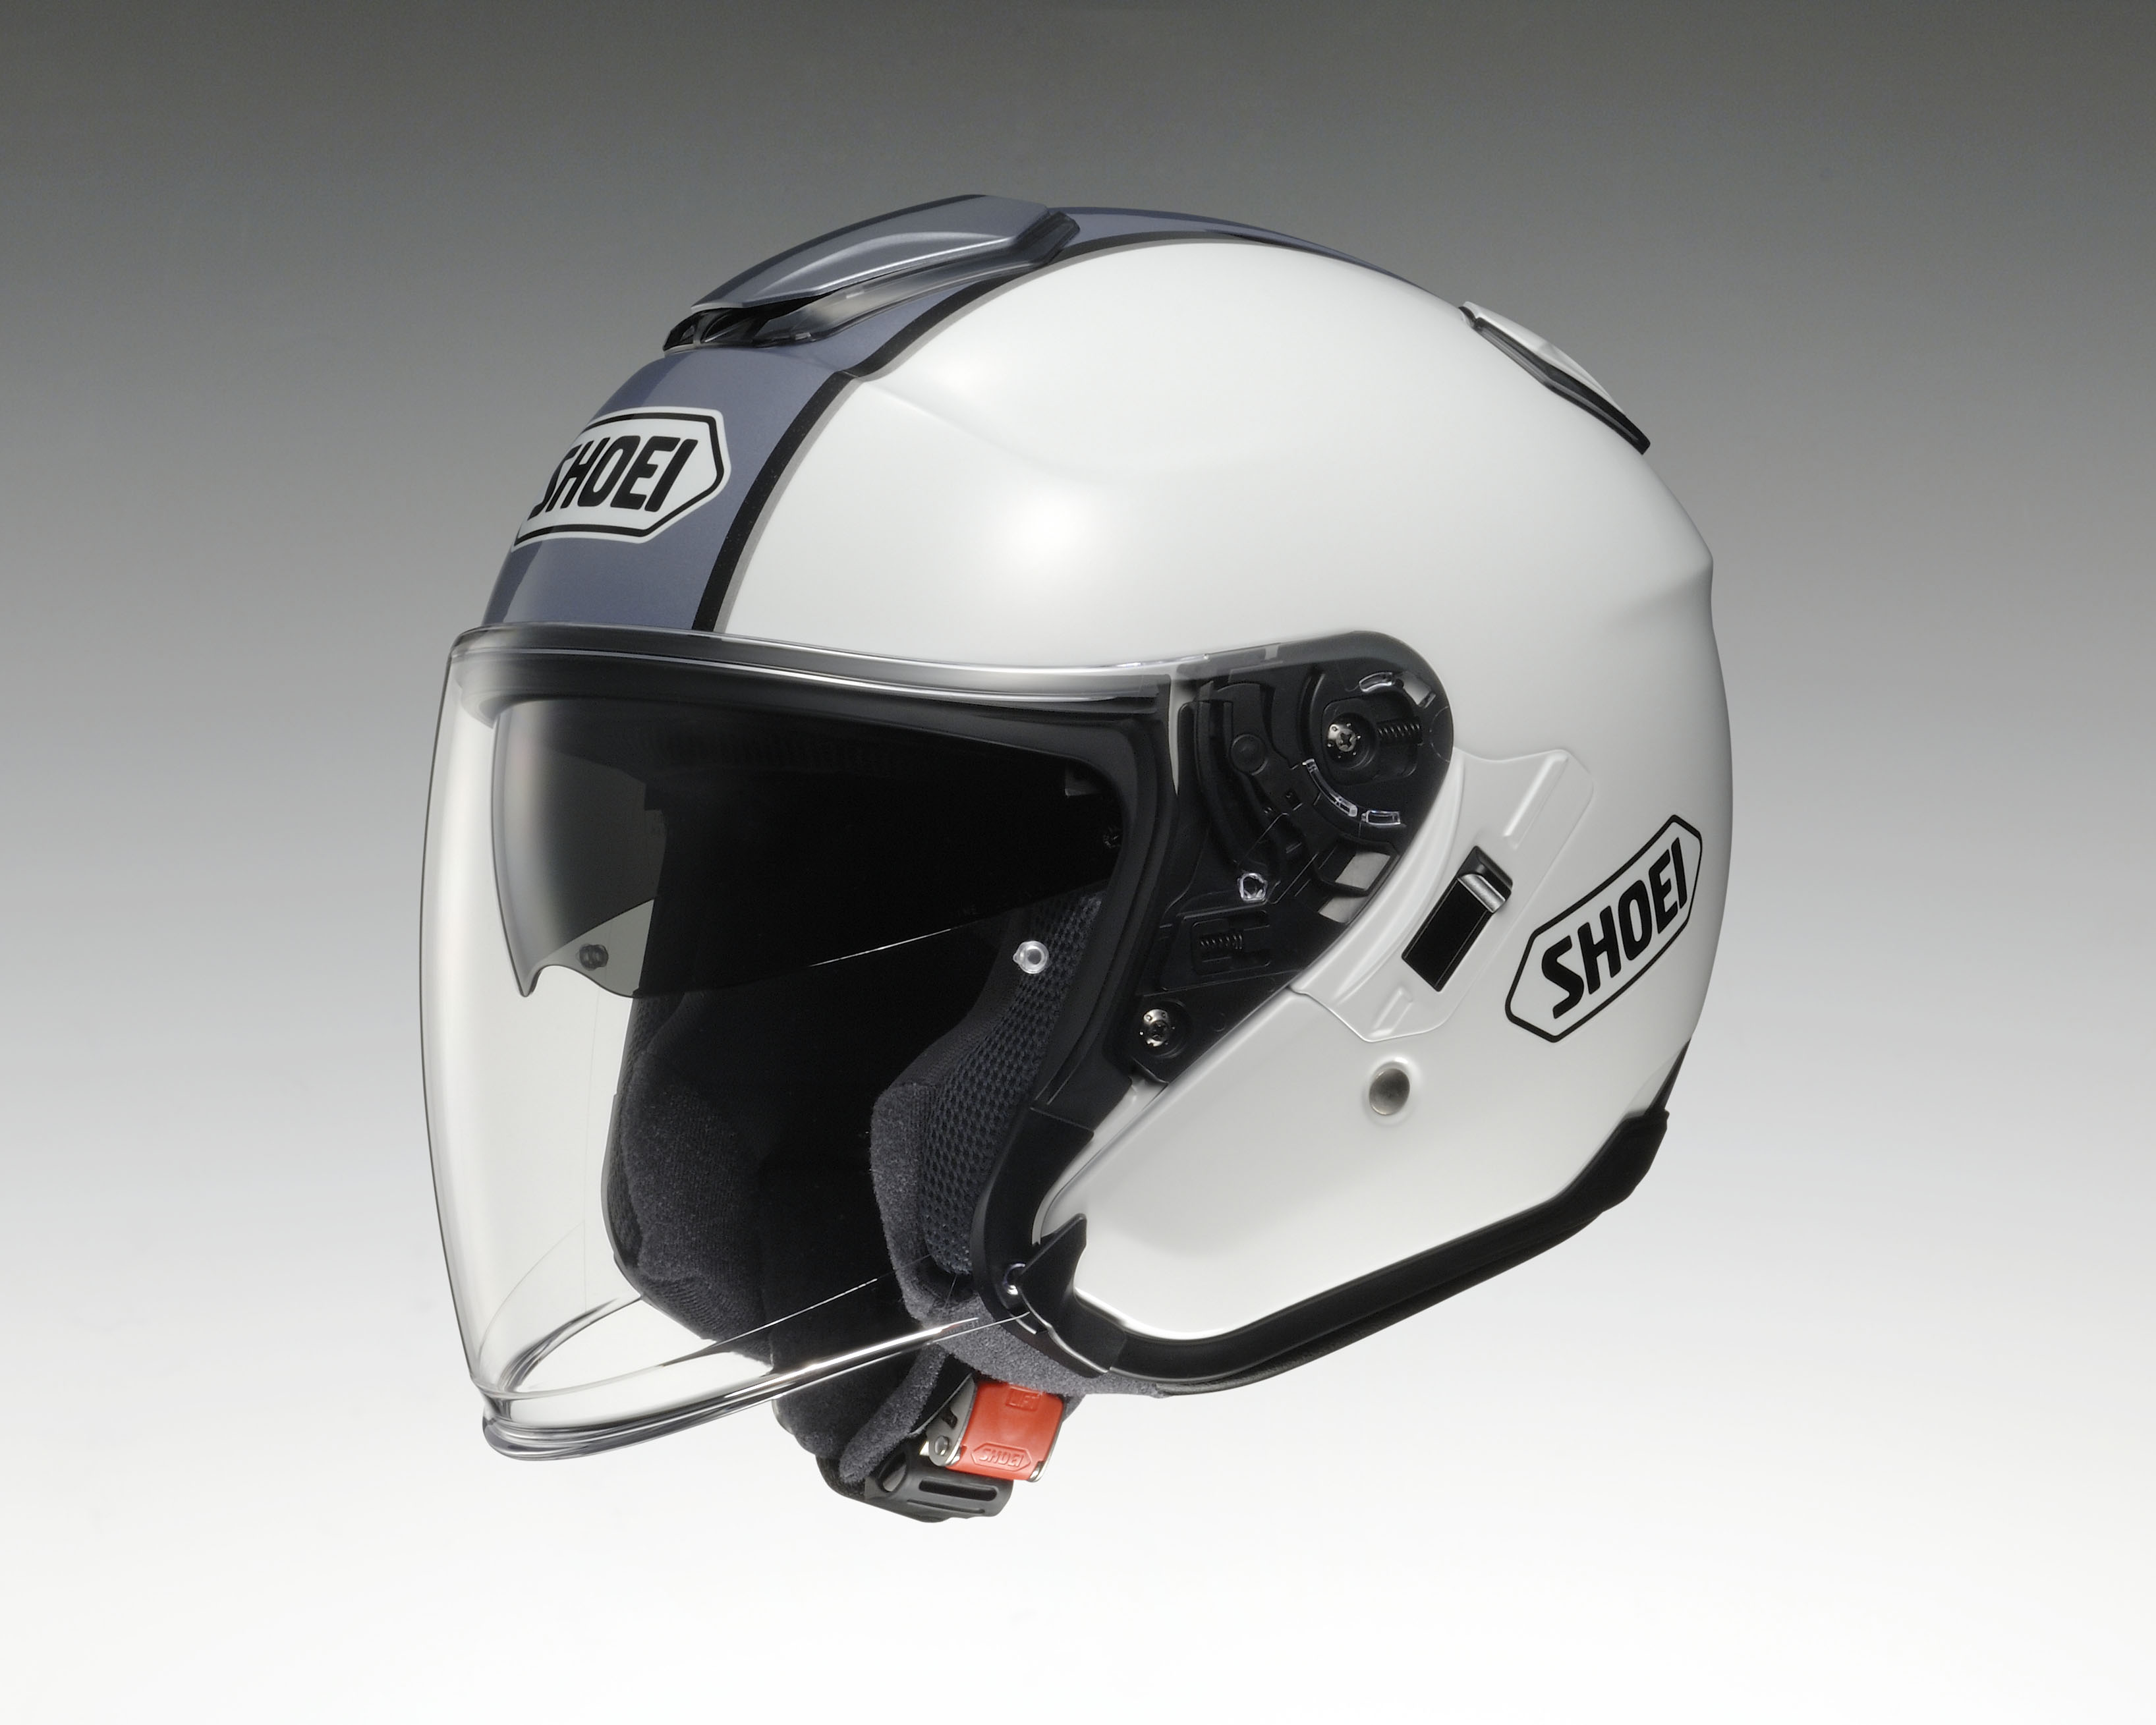 Casco Helmet Jet Shoei J-Cruise CORSO TC-6 moto scooter